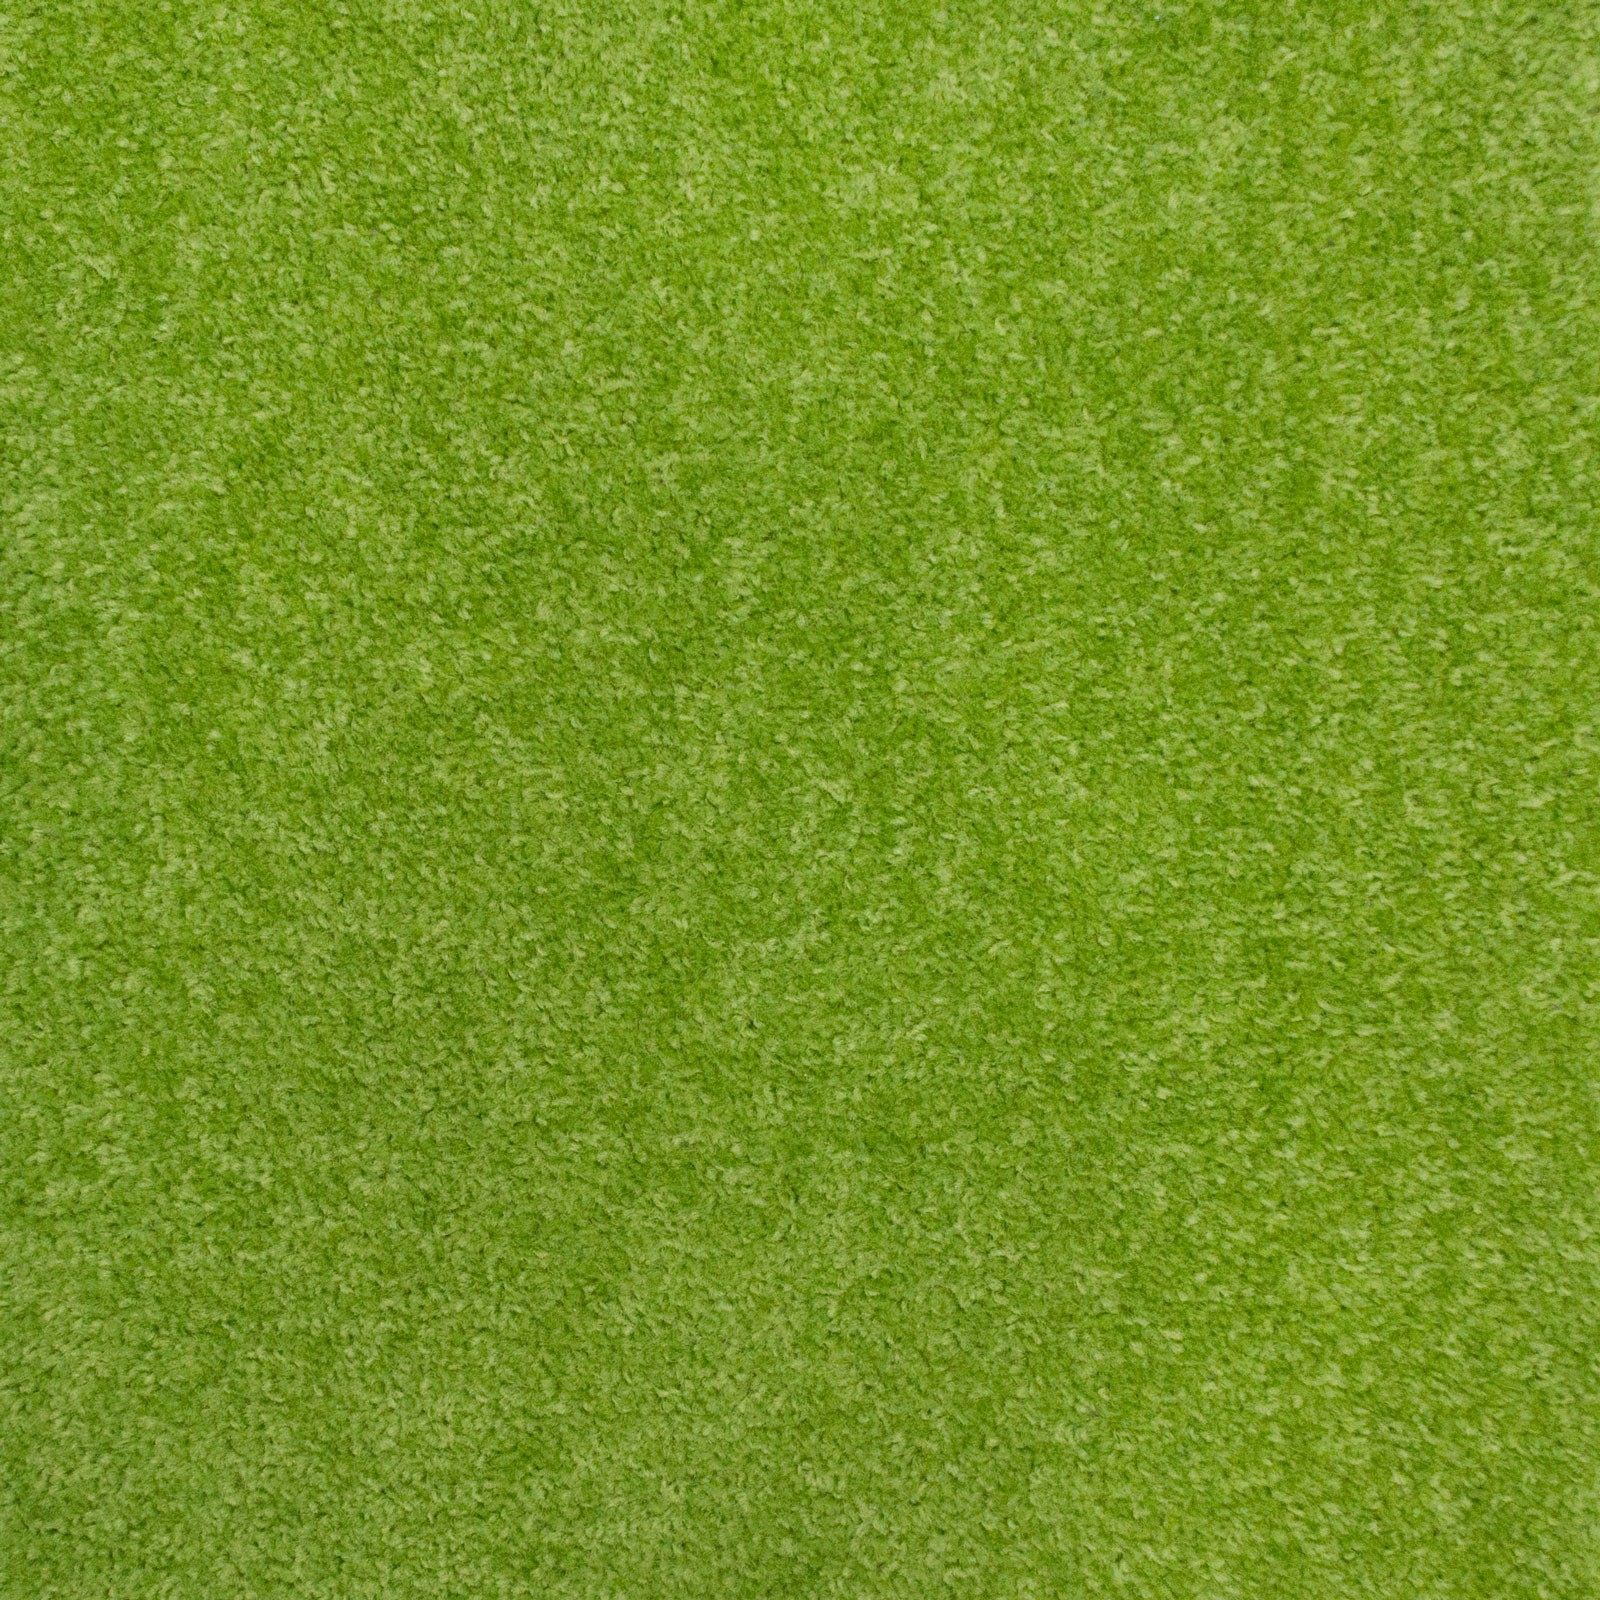 green carpet lime green belton feltback twist carpet buy trends and images NIUNXCG